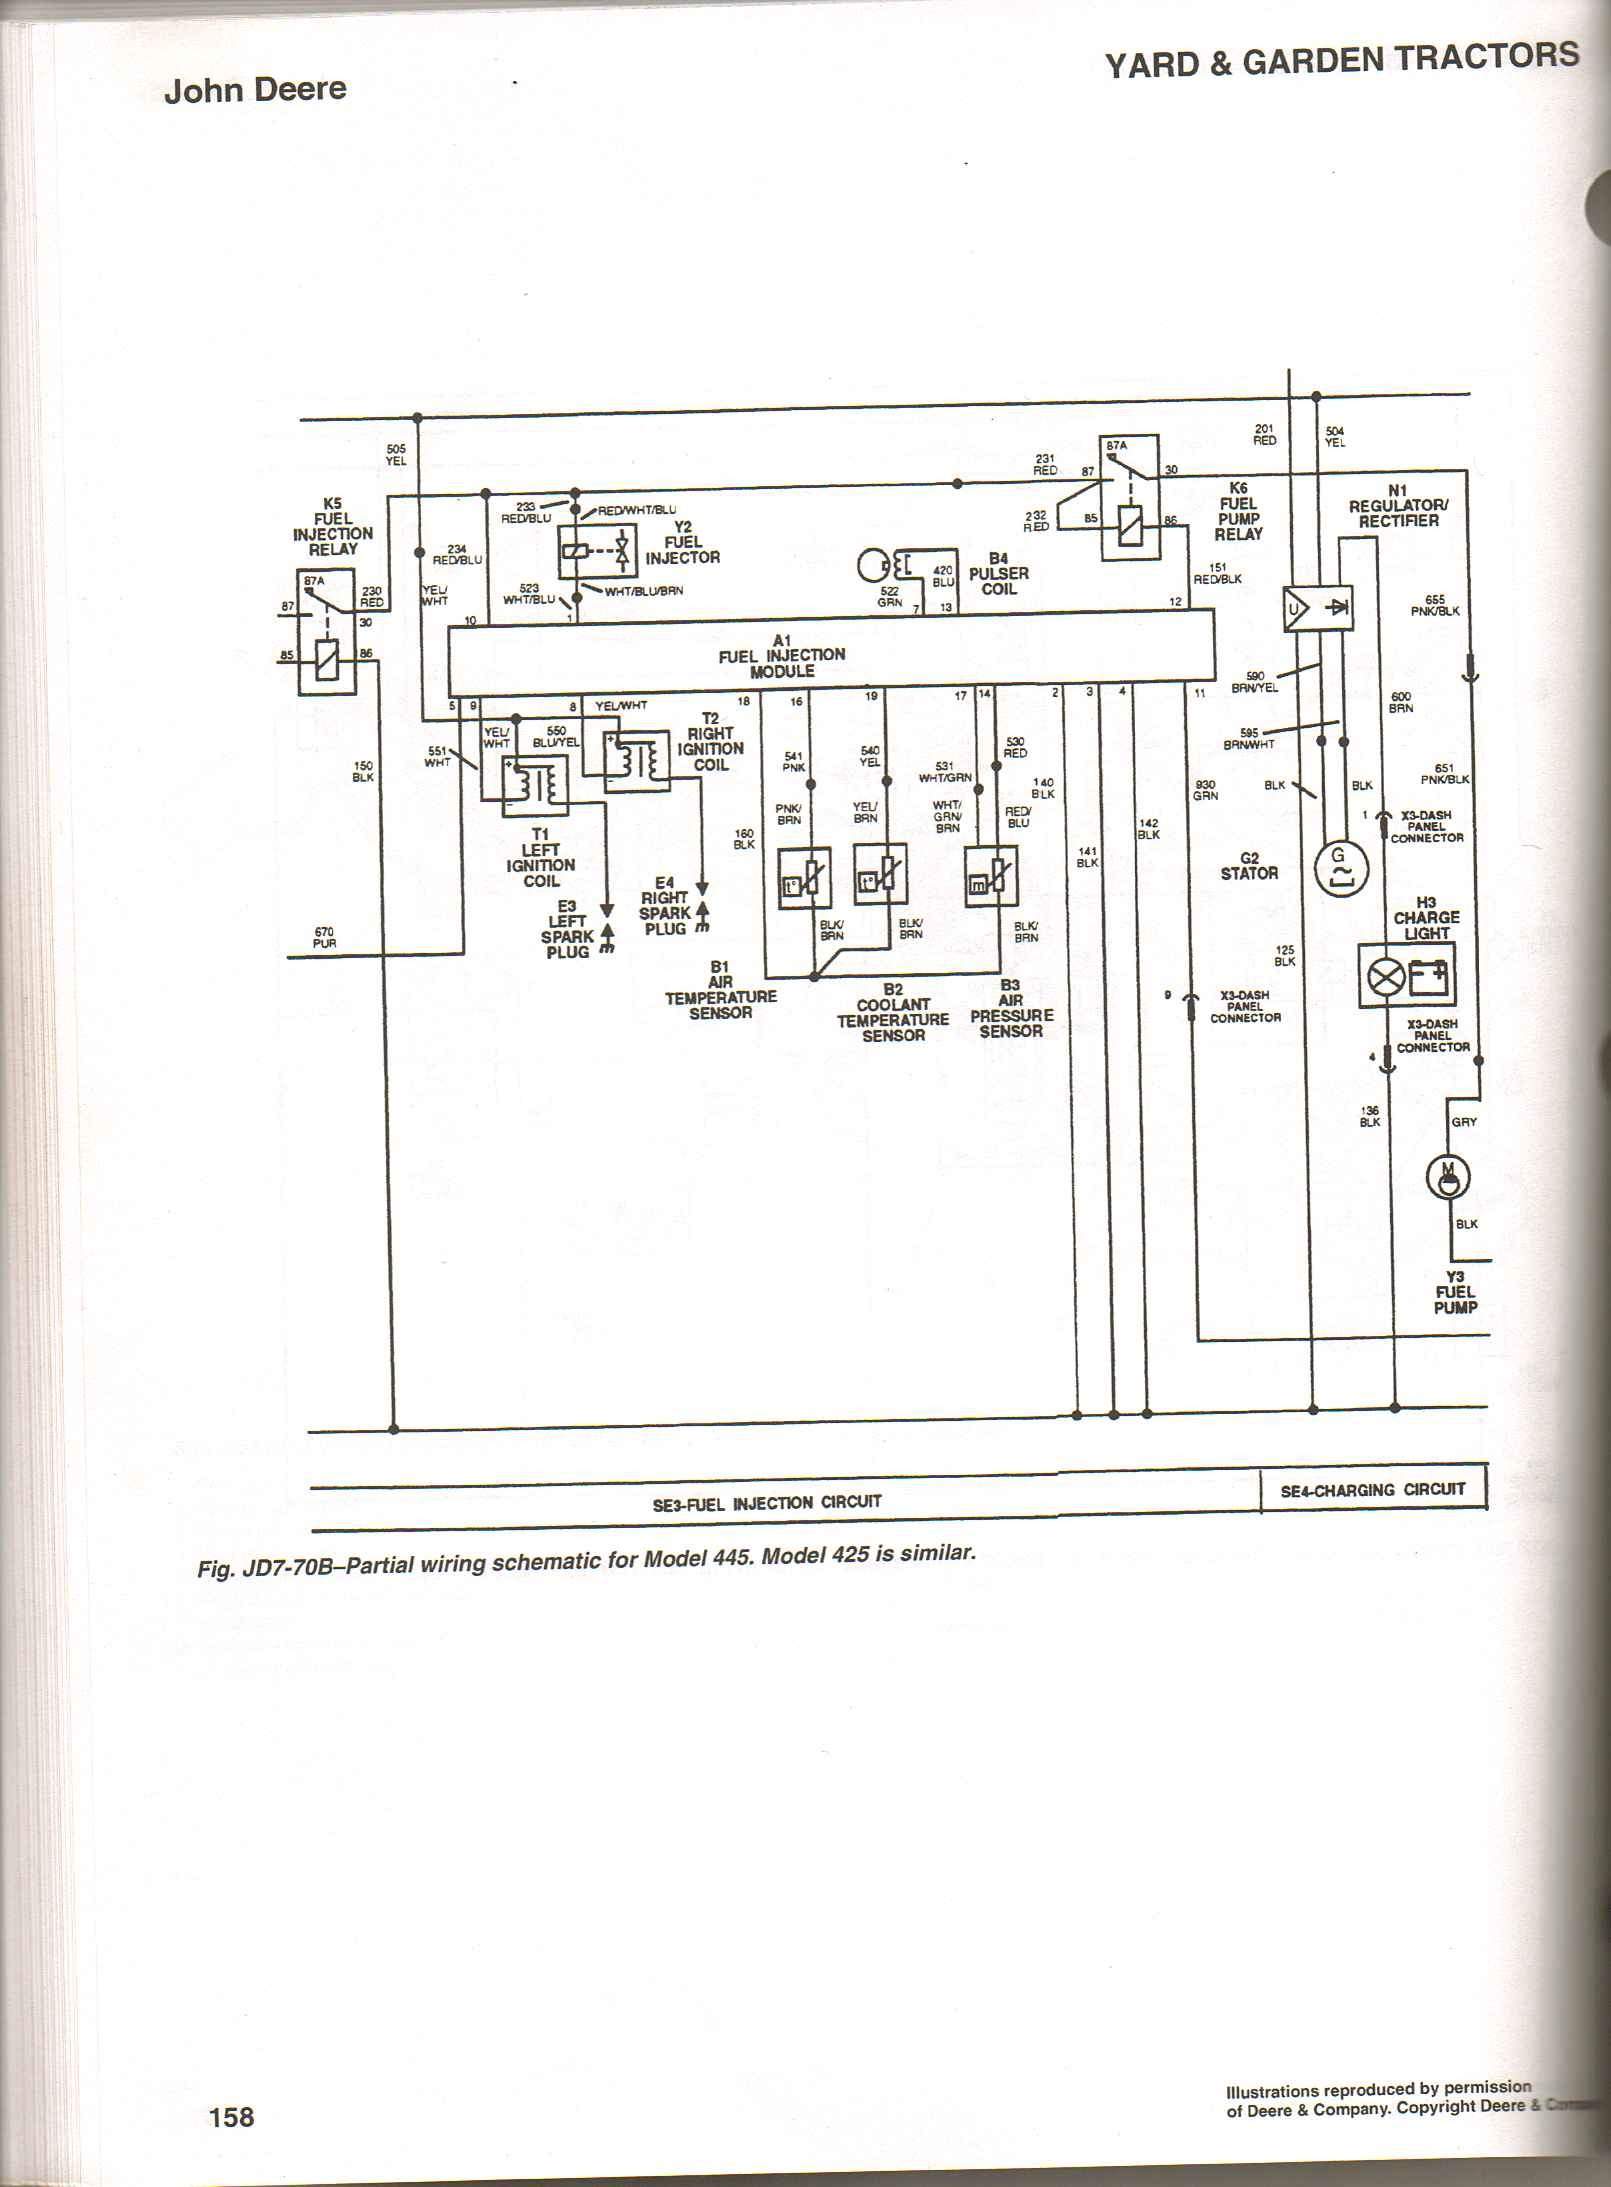 John Deere 345 Electrical Schematic